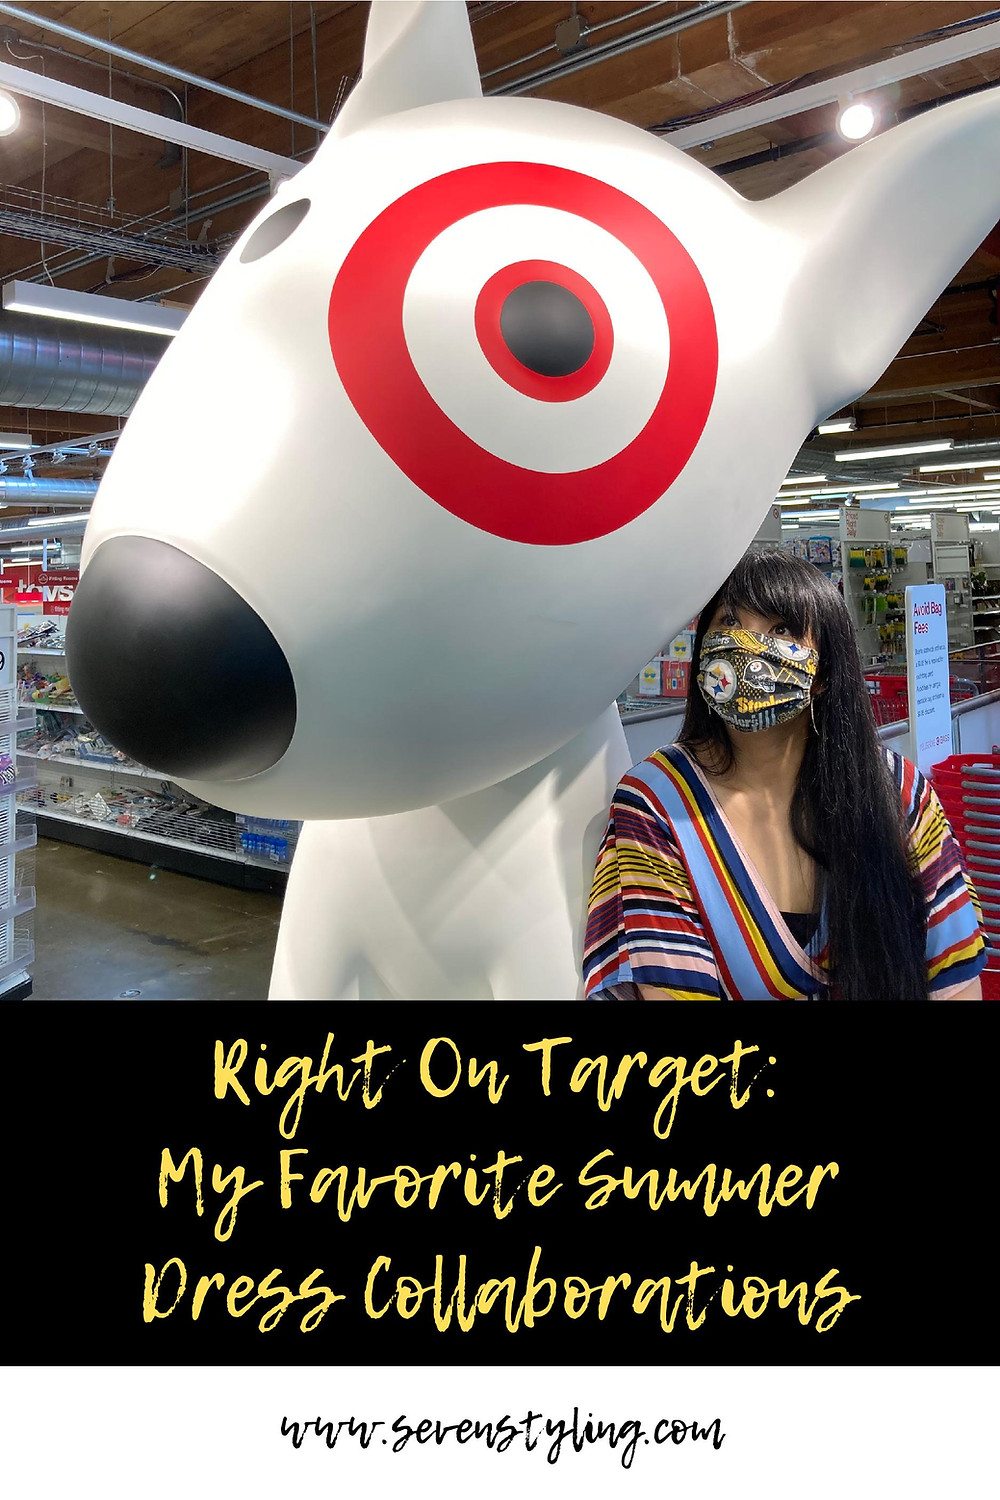 Right On Target: My Favorite Summer Dress Collaborations